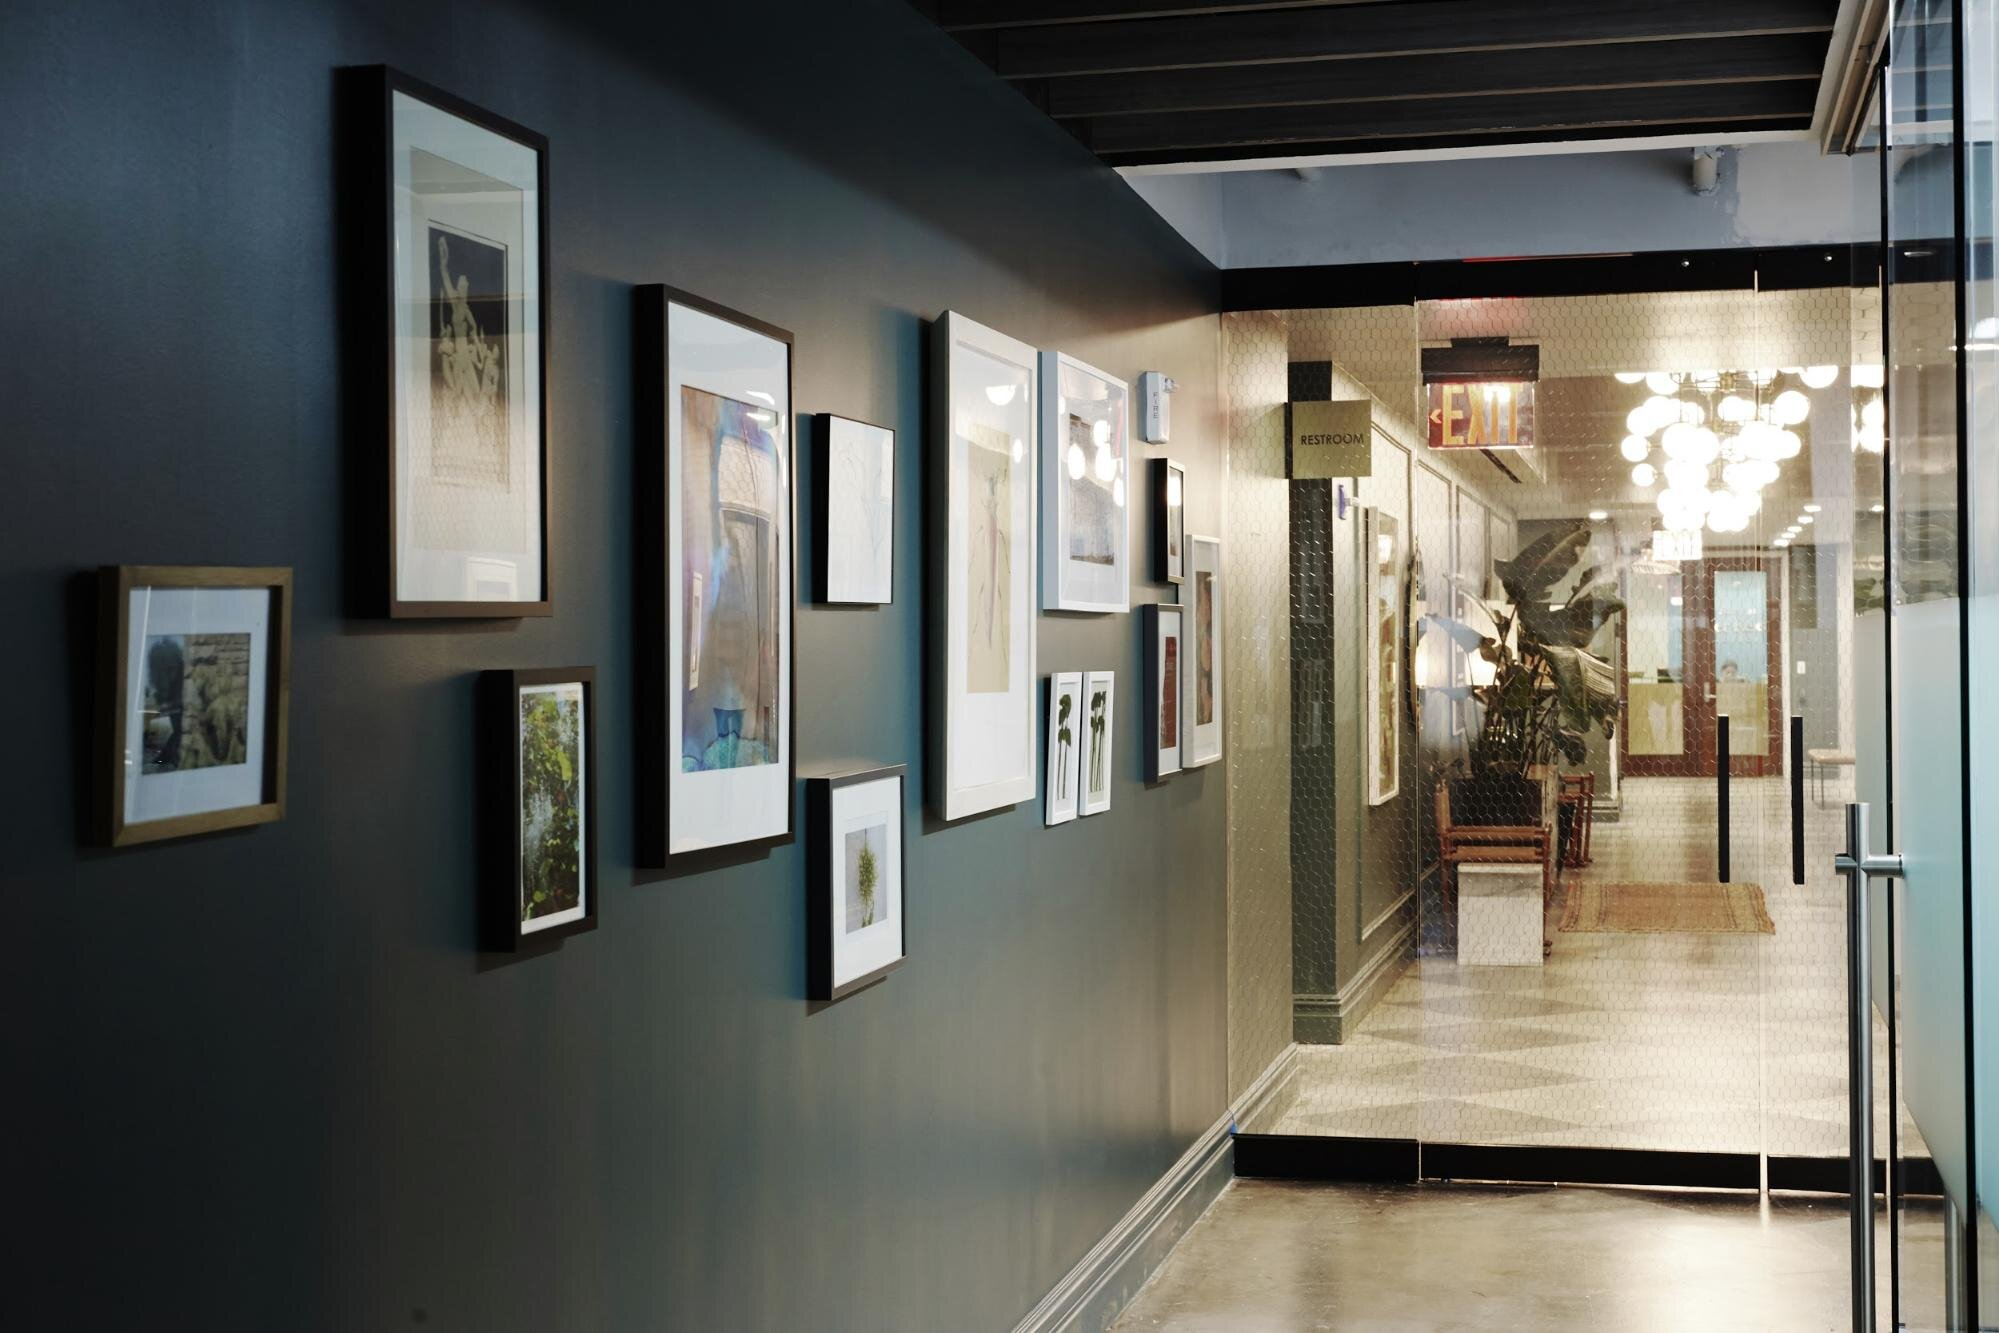 Black wall in an office with picture frames hanging on it